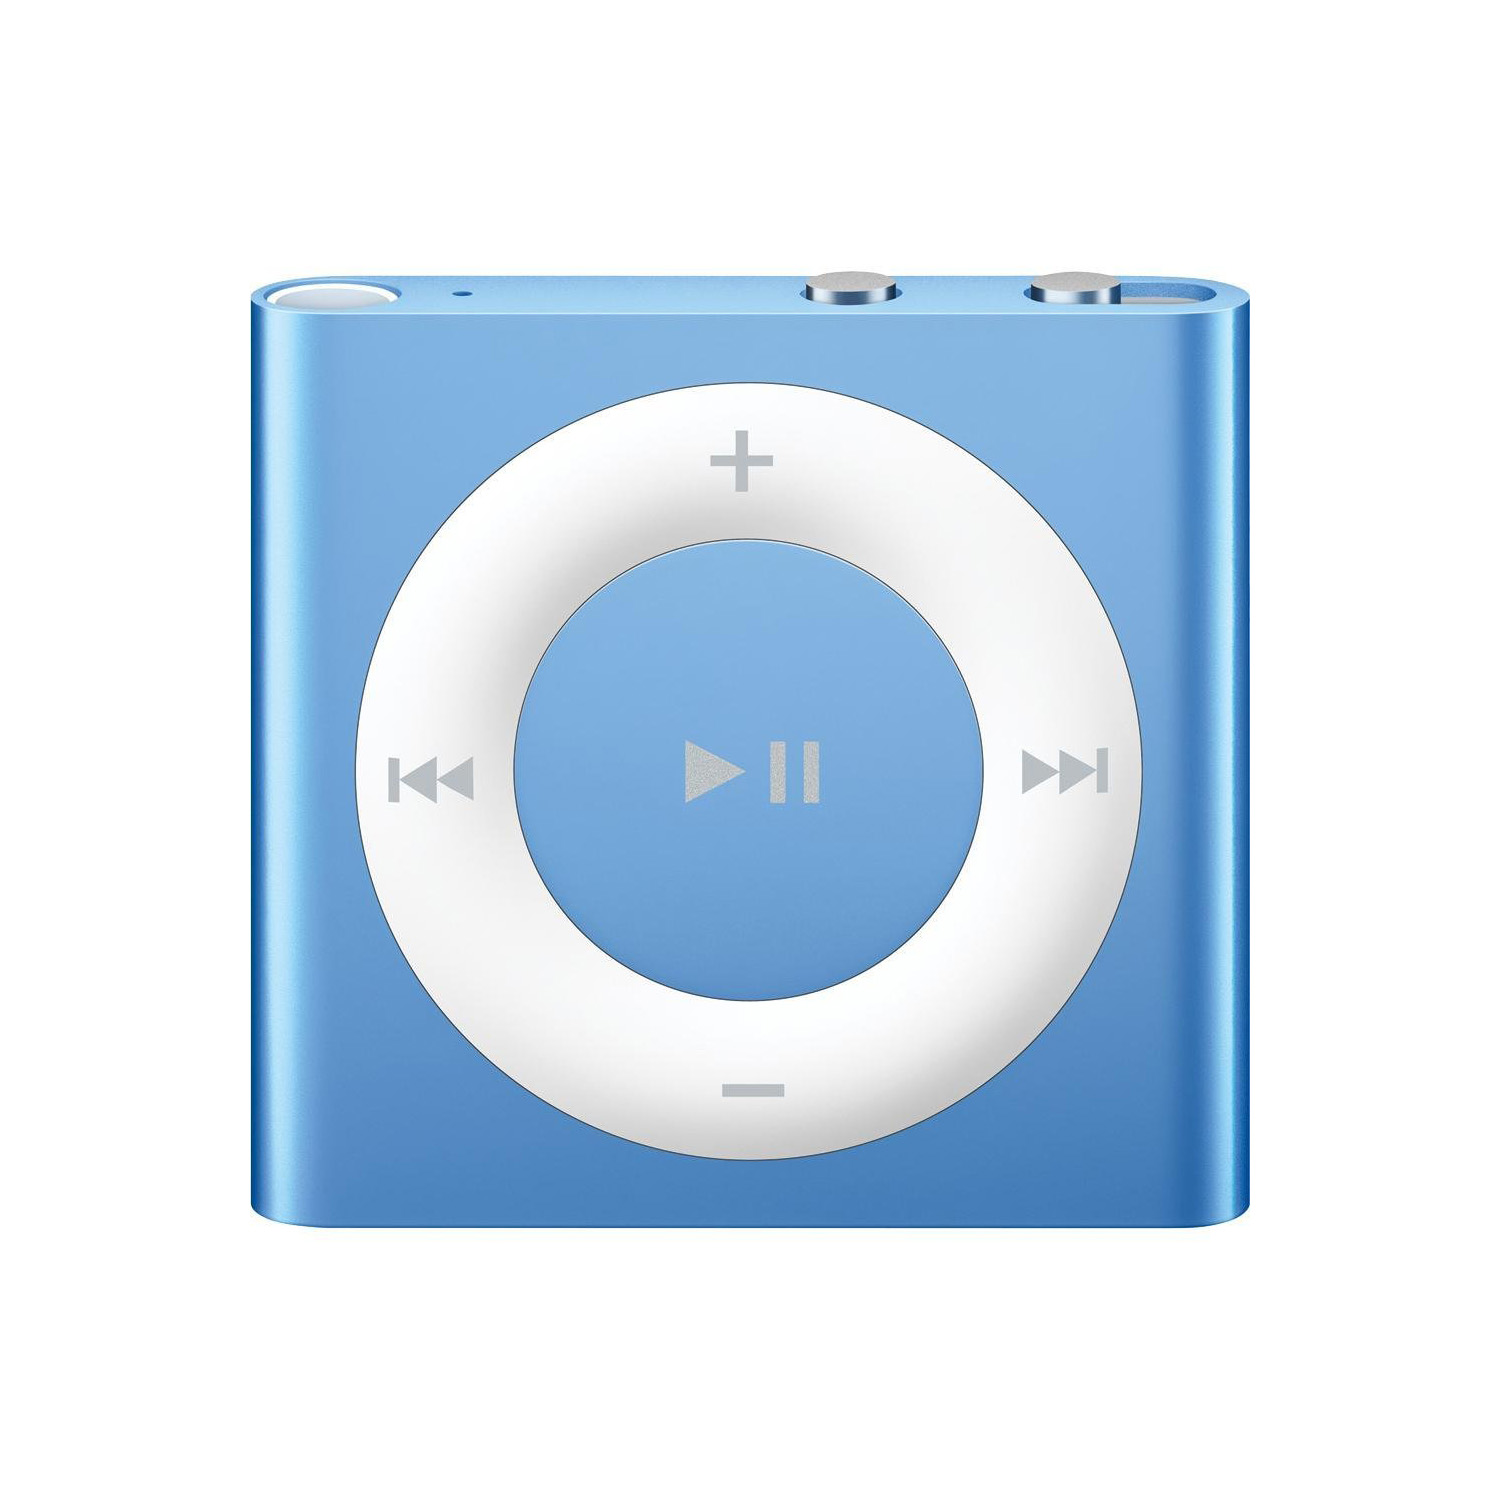 apple ipod shuffle 2gb 4th generation rechargeable itunes music mp3 player ebay. Black Bedroom Furniture Sets. Home Design Ideas